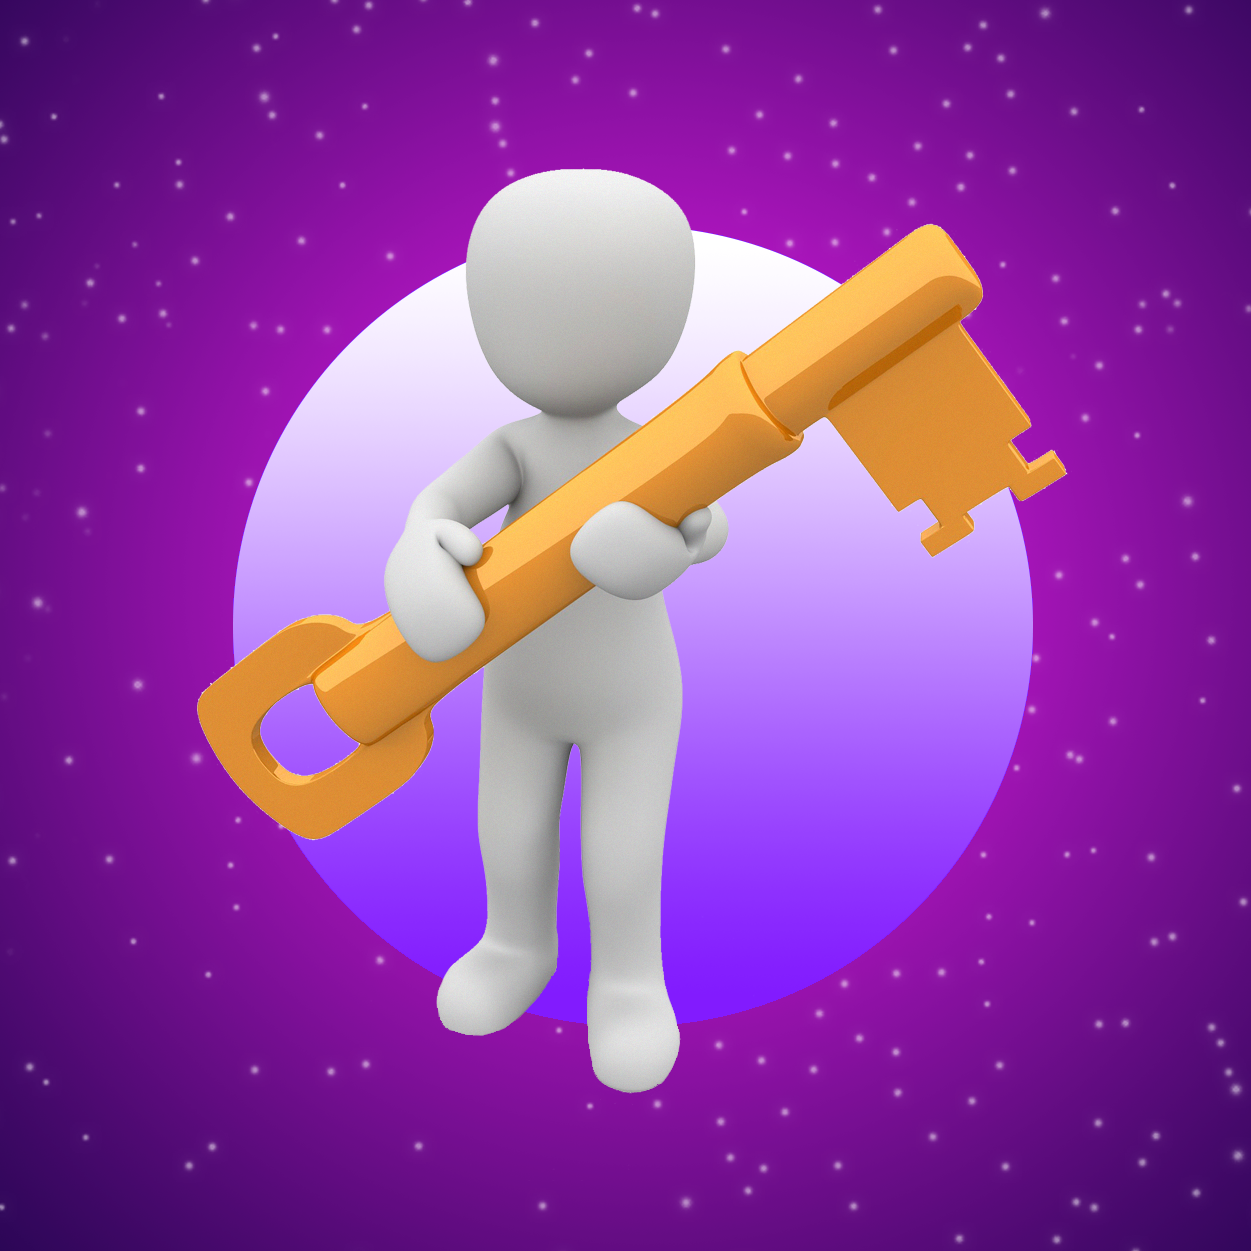 Cartoon human holding a key, on top of a background of a purple sky with stars.